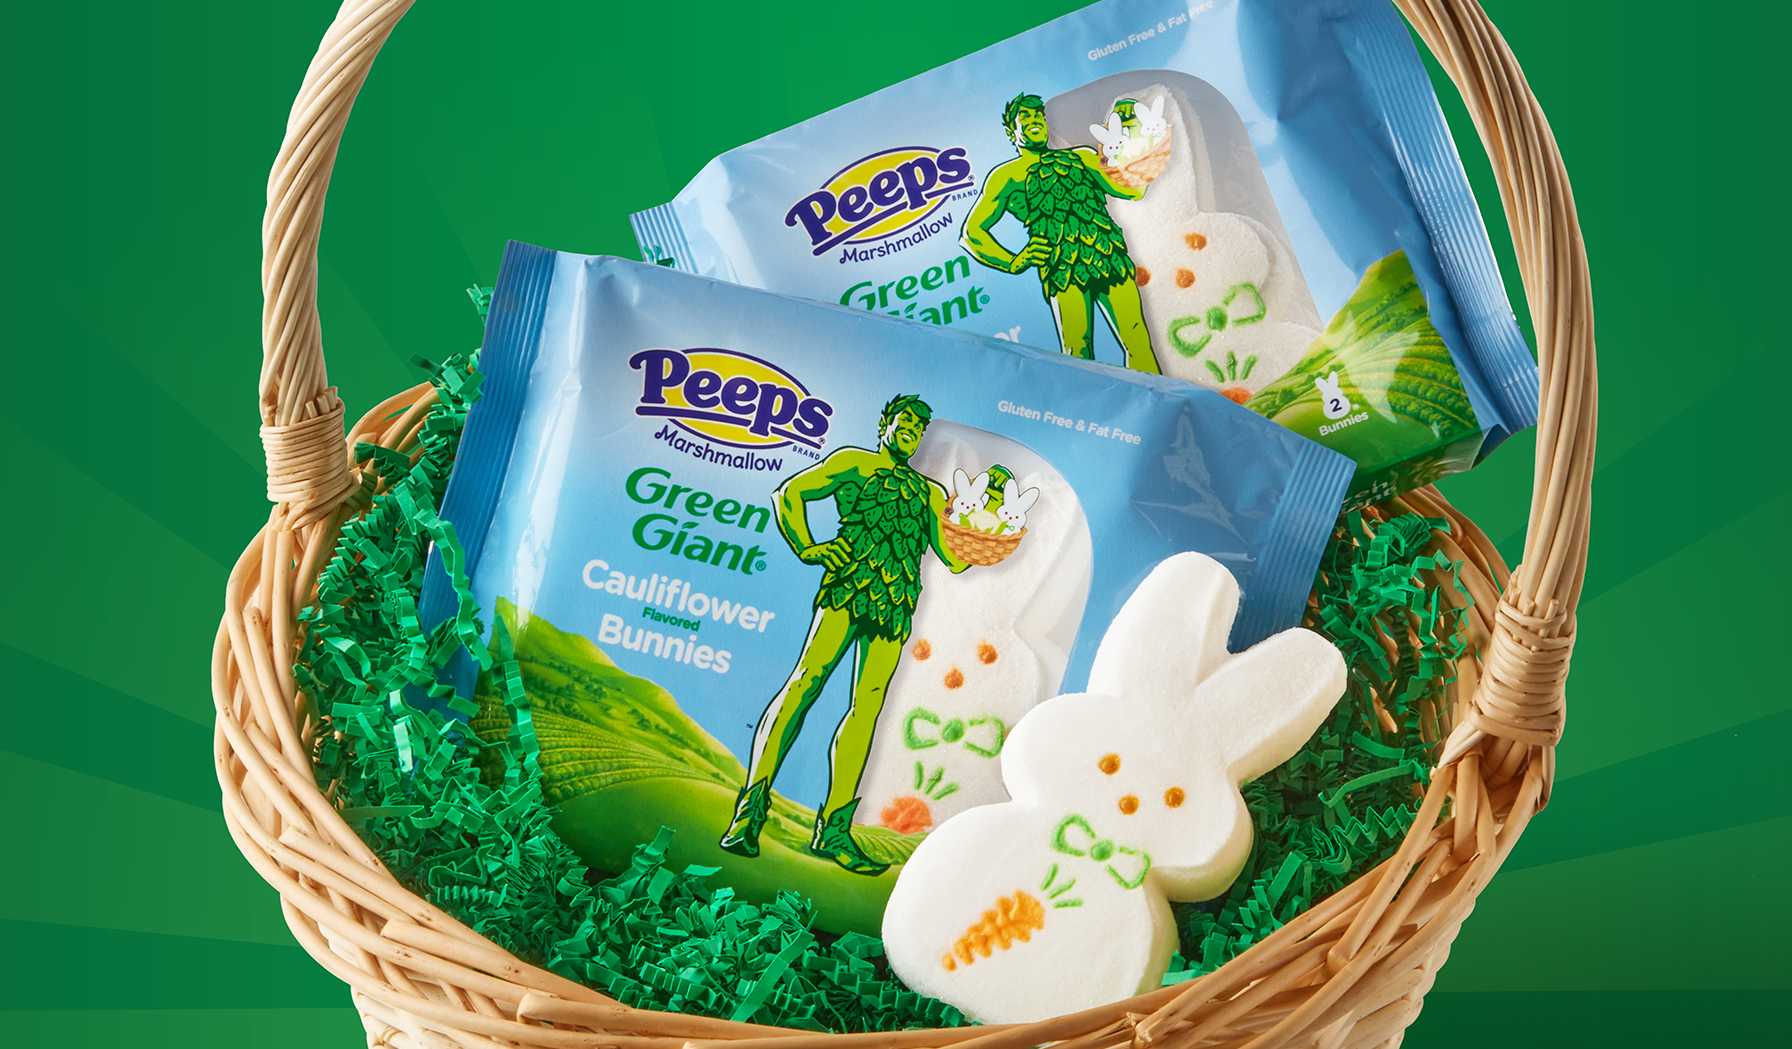 green giant cauliflower-flavored peeps in an easter basket